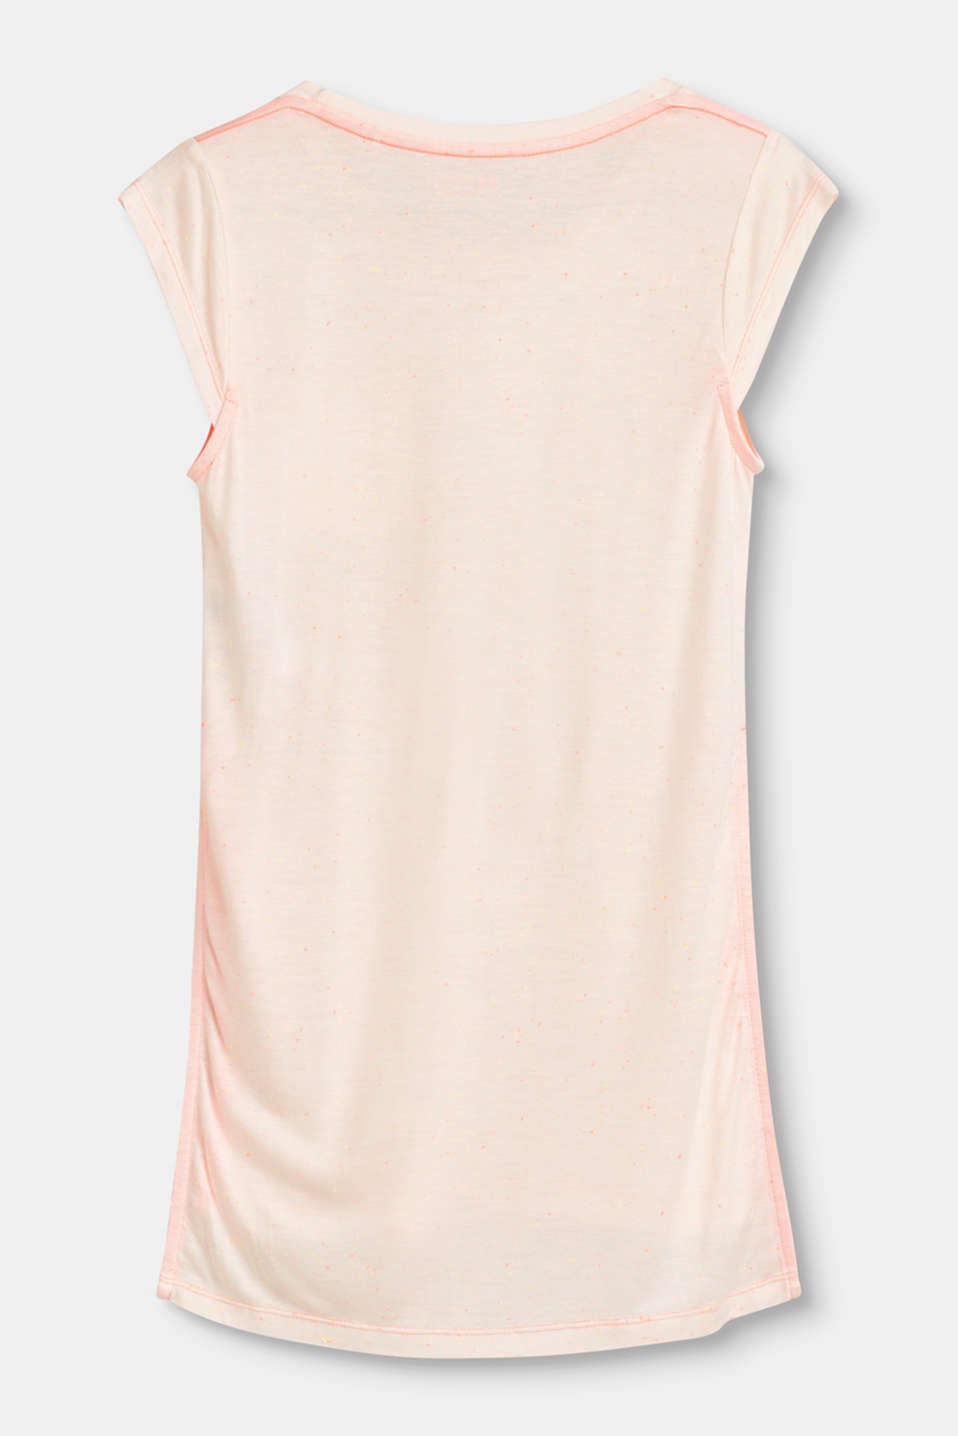 Long, slit T-shirt with neon details